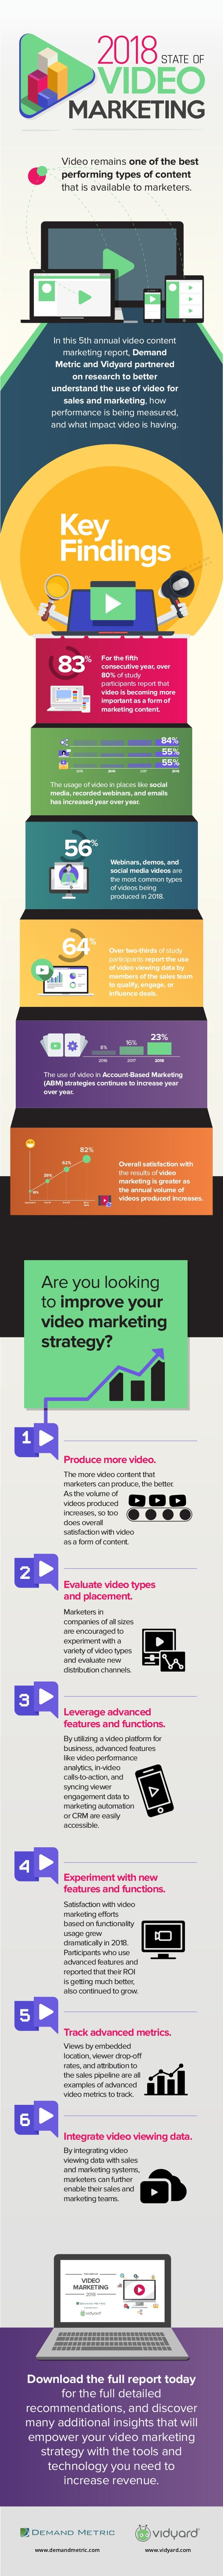 In this 5th annual video content marketing report, Demand Metric and Vidyard partnered on research to better understand th...